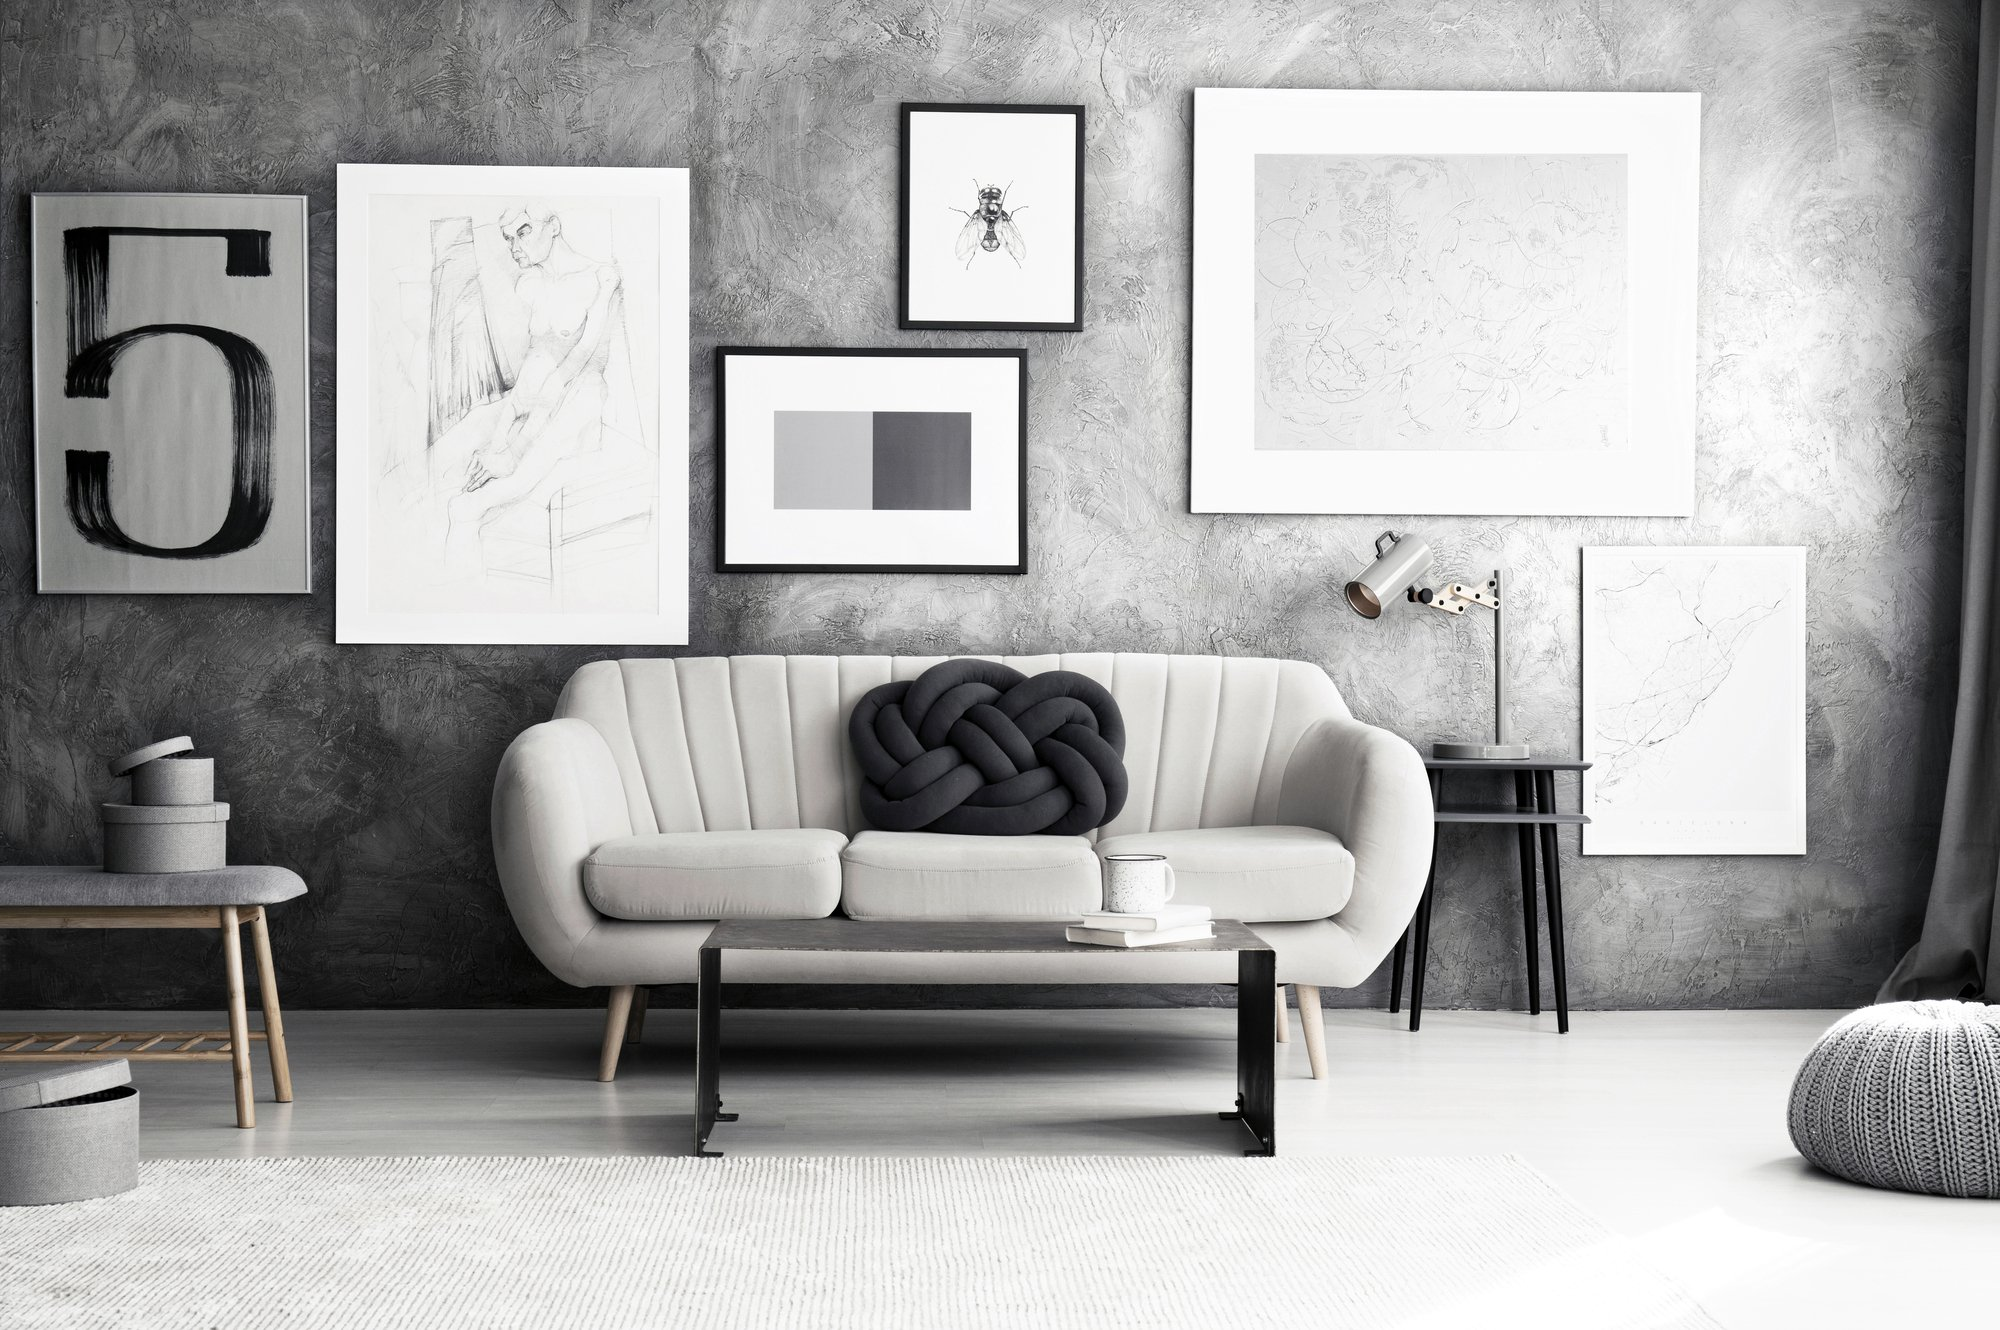 5 Simple Art Wall Ideas For Your Home